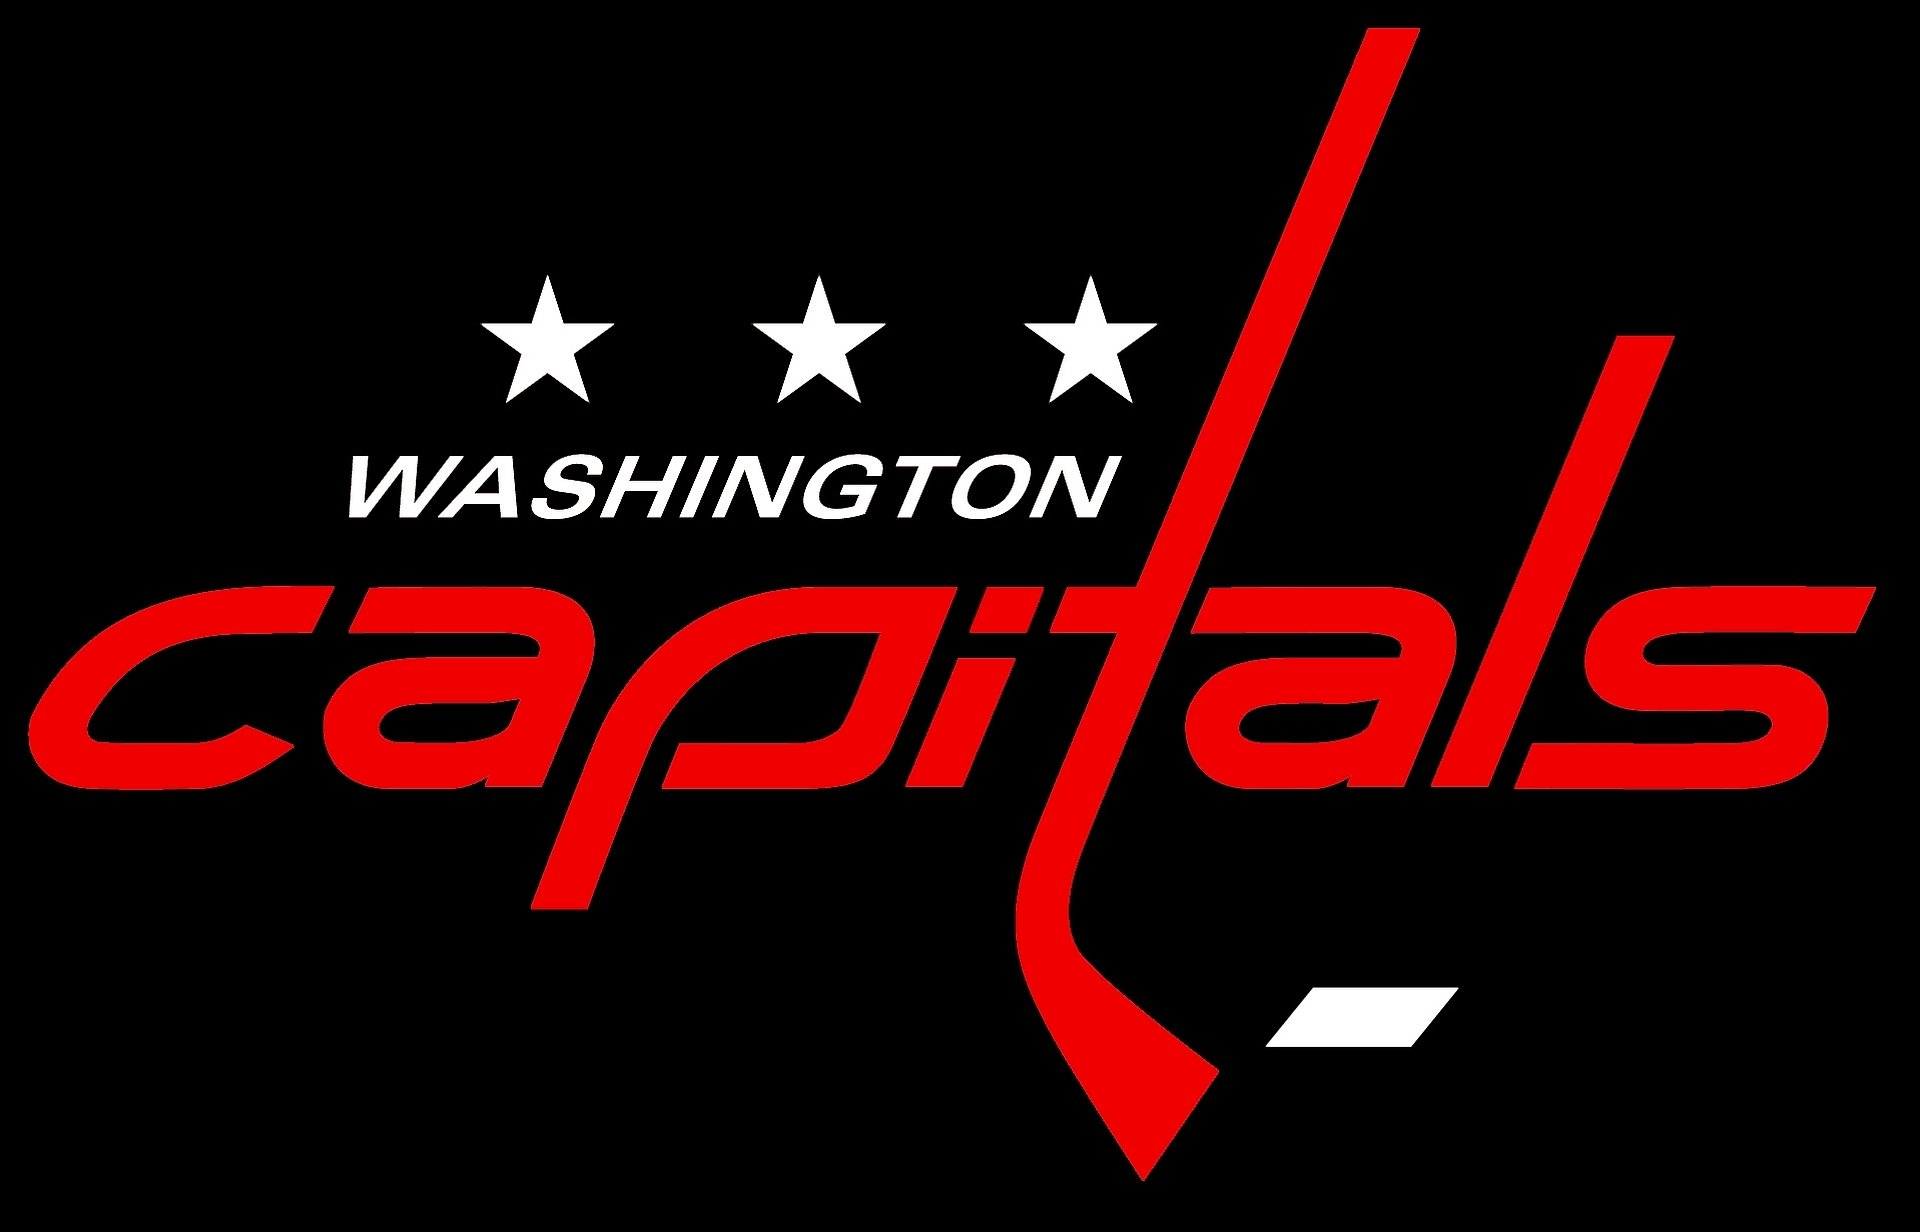 Vancouver Canucks Iphone Wallpaper Washington Capitals Full Hd Wallpaper And Background